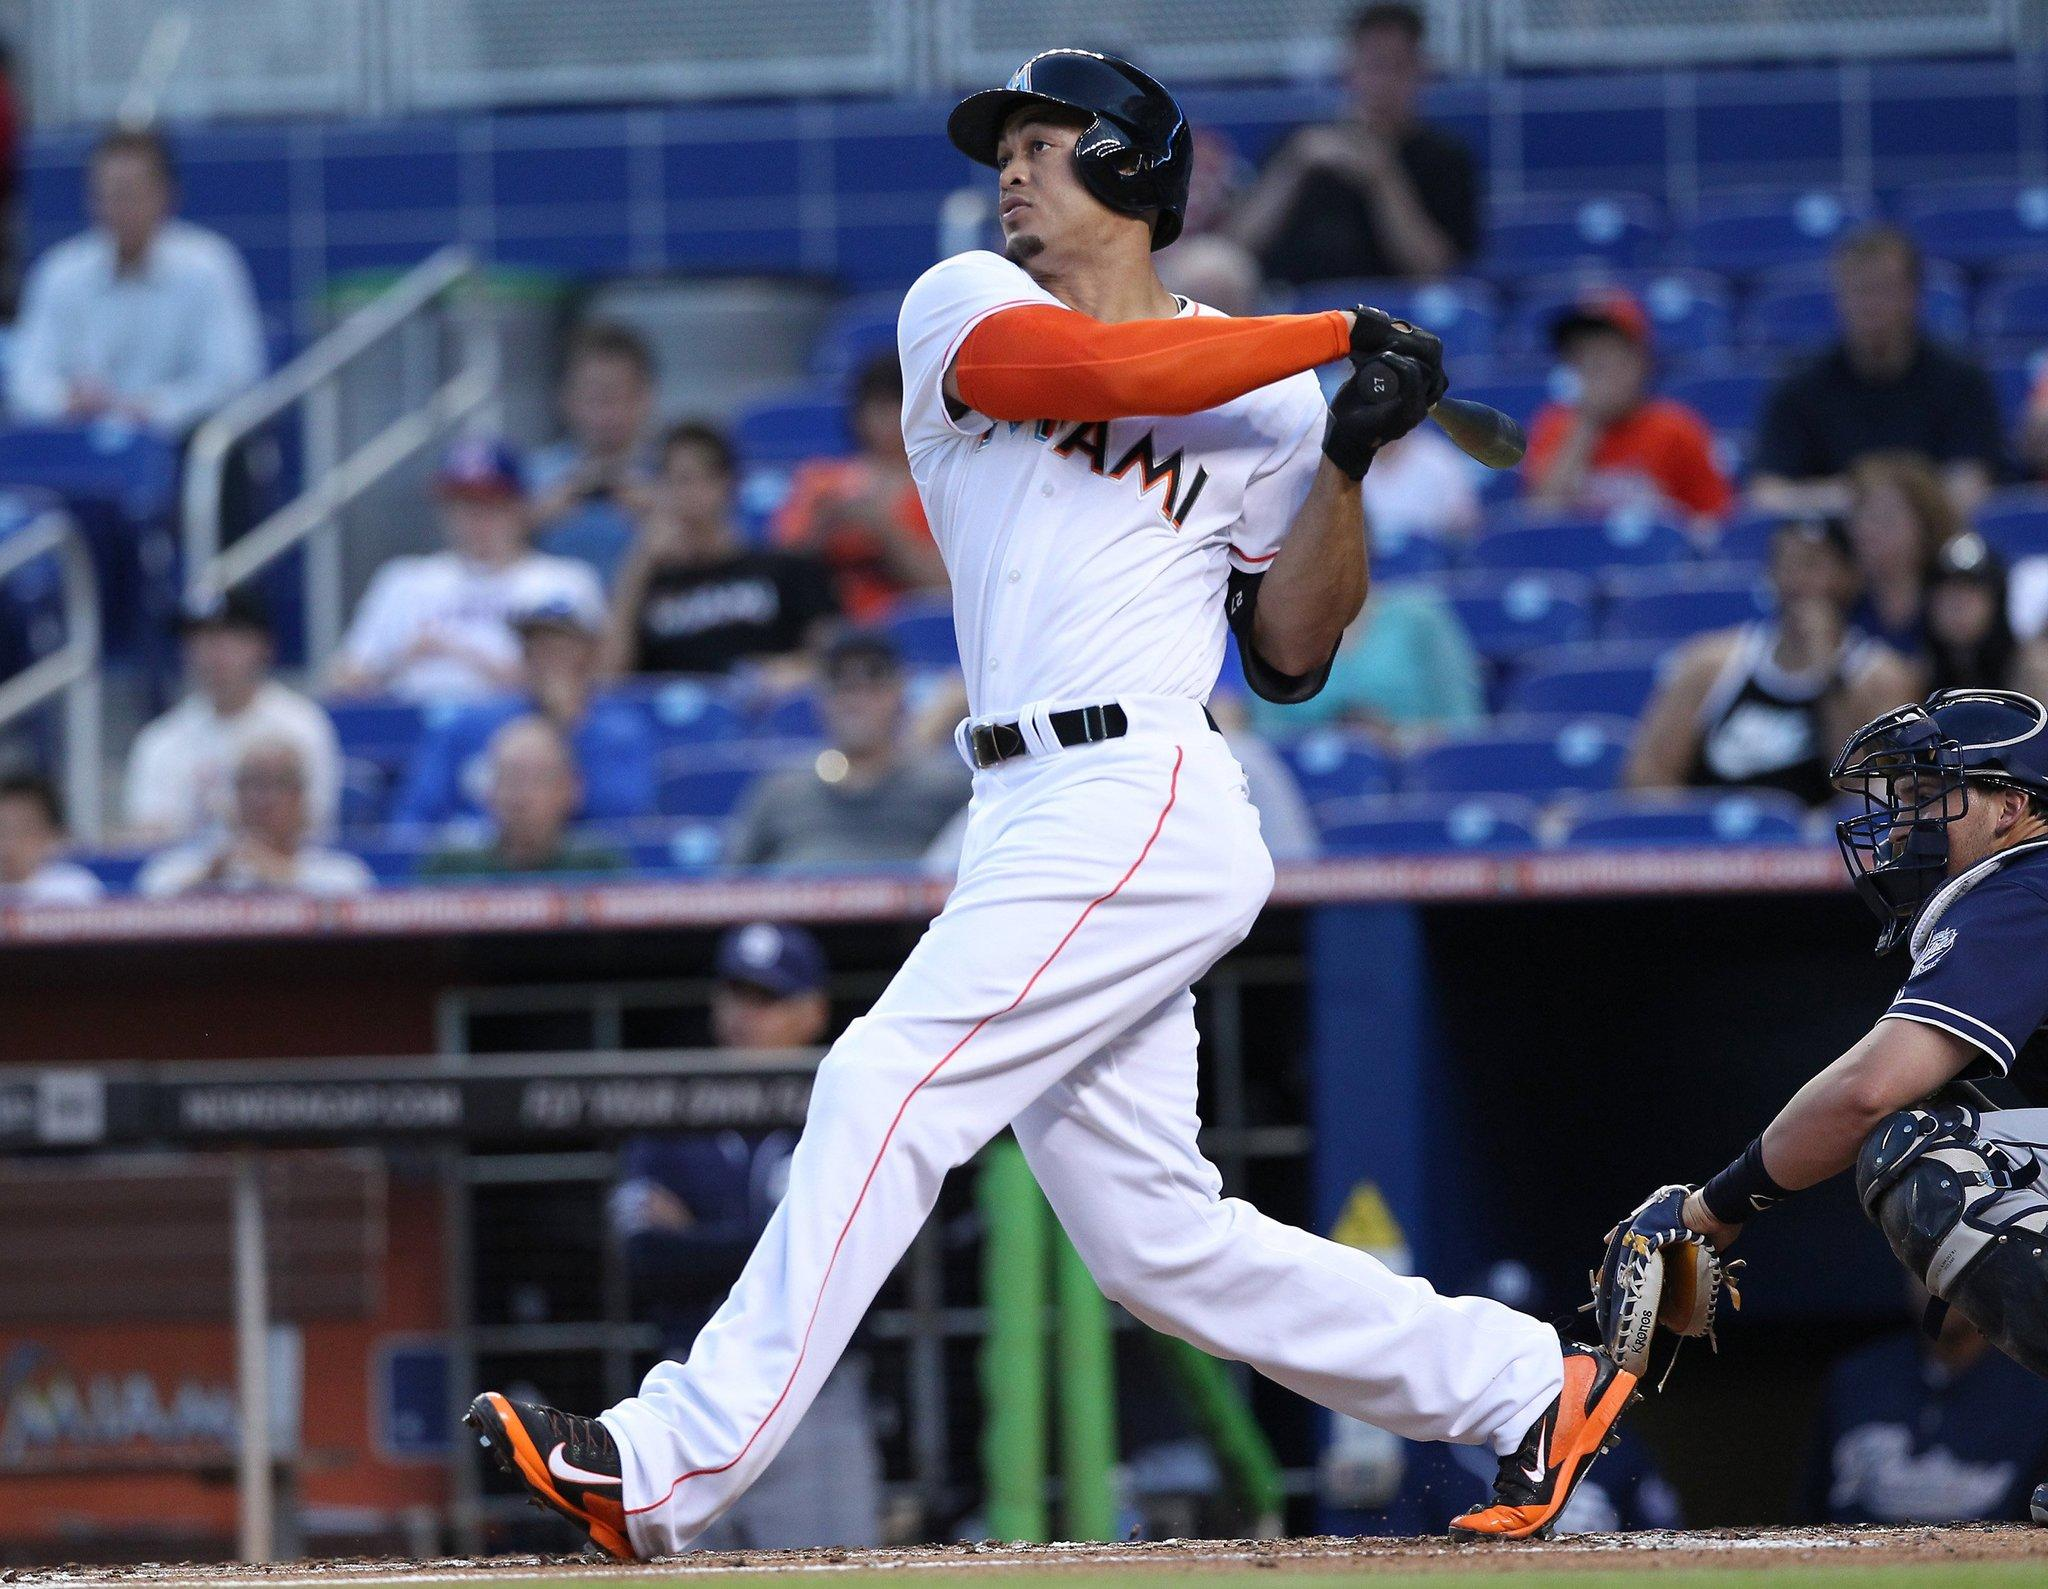 The Miami Marlins' Giancarlo Stanton hits a two-run home run in the first inning against the San Diego Padres on Friday, April 4, 2014, at Marlins Park in Miami. (David Santiago/El Nuevo Herald/MCT)